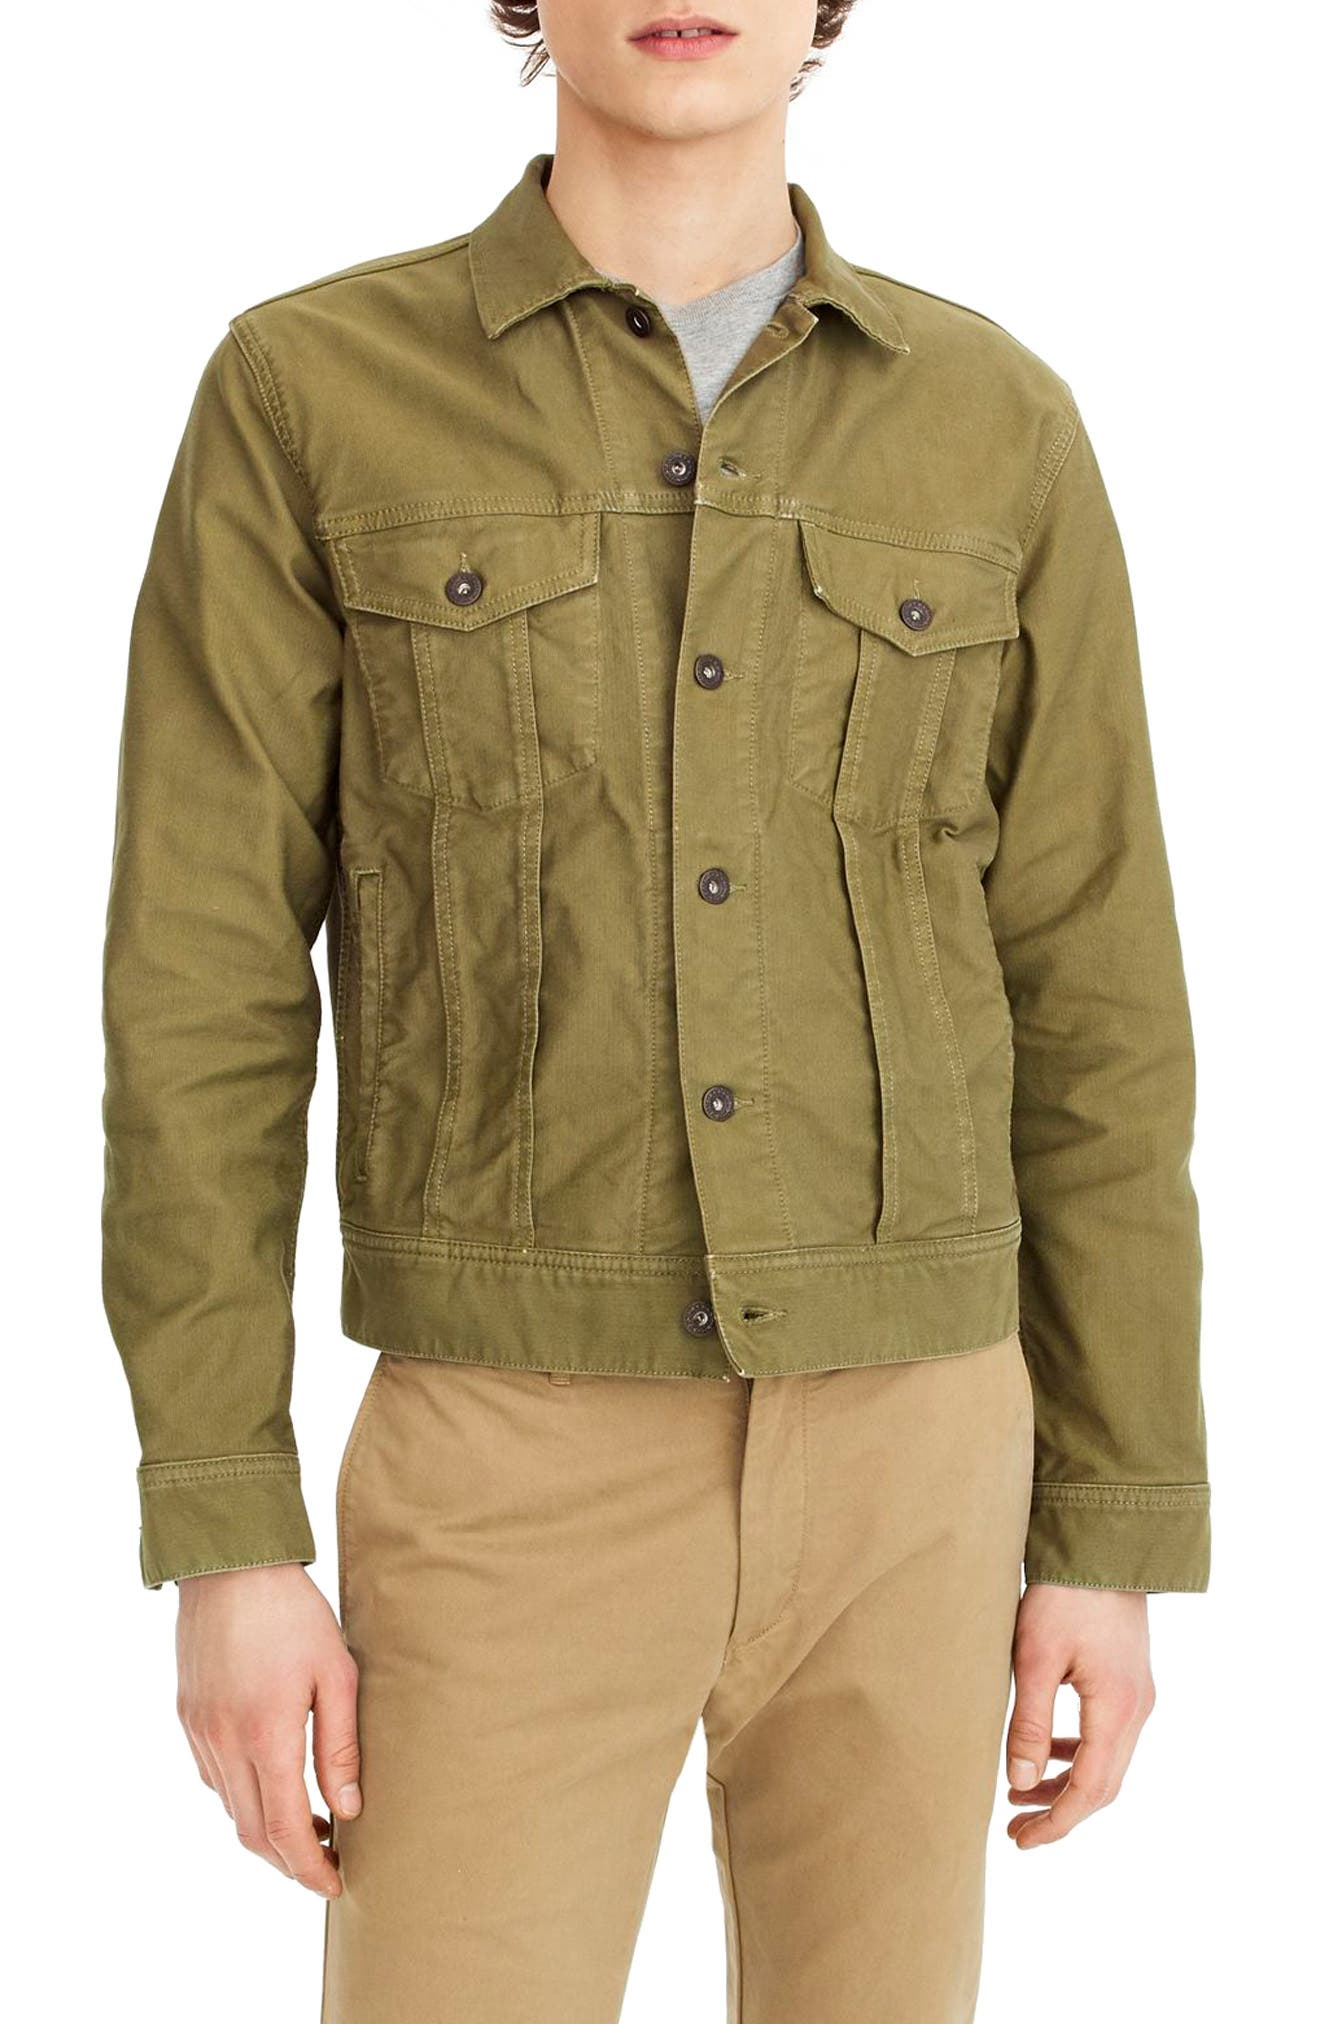 Main Image - J.Crew Garment Dyed Bedford Cord Trucker Jacket